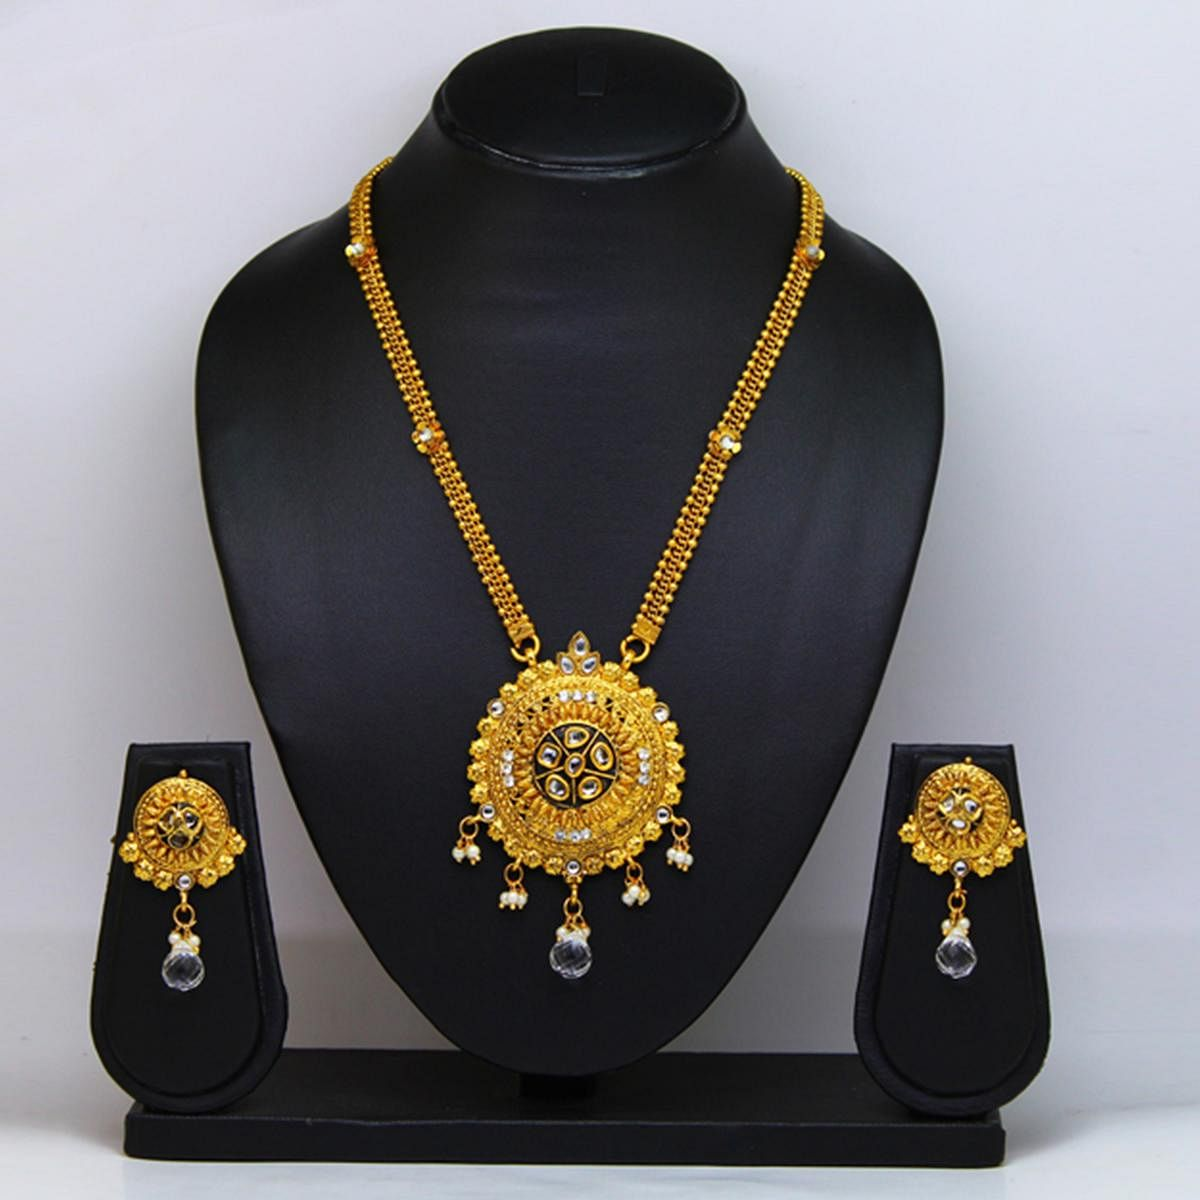 White & Gold Colored Pearl & Gold Finish Necklace Set